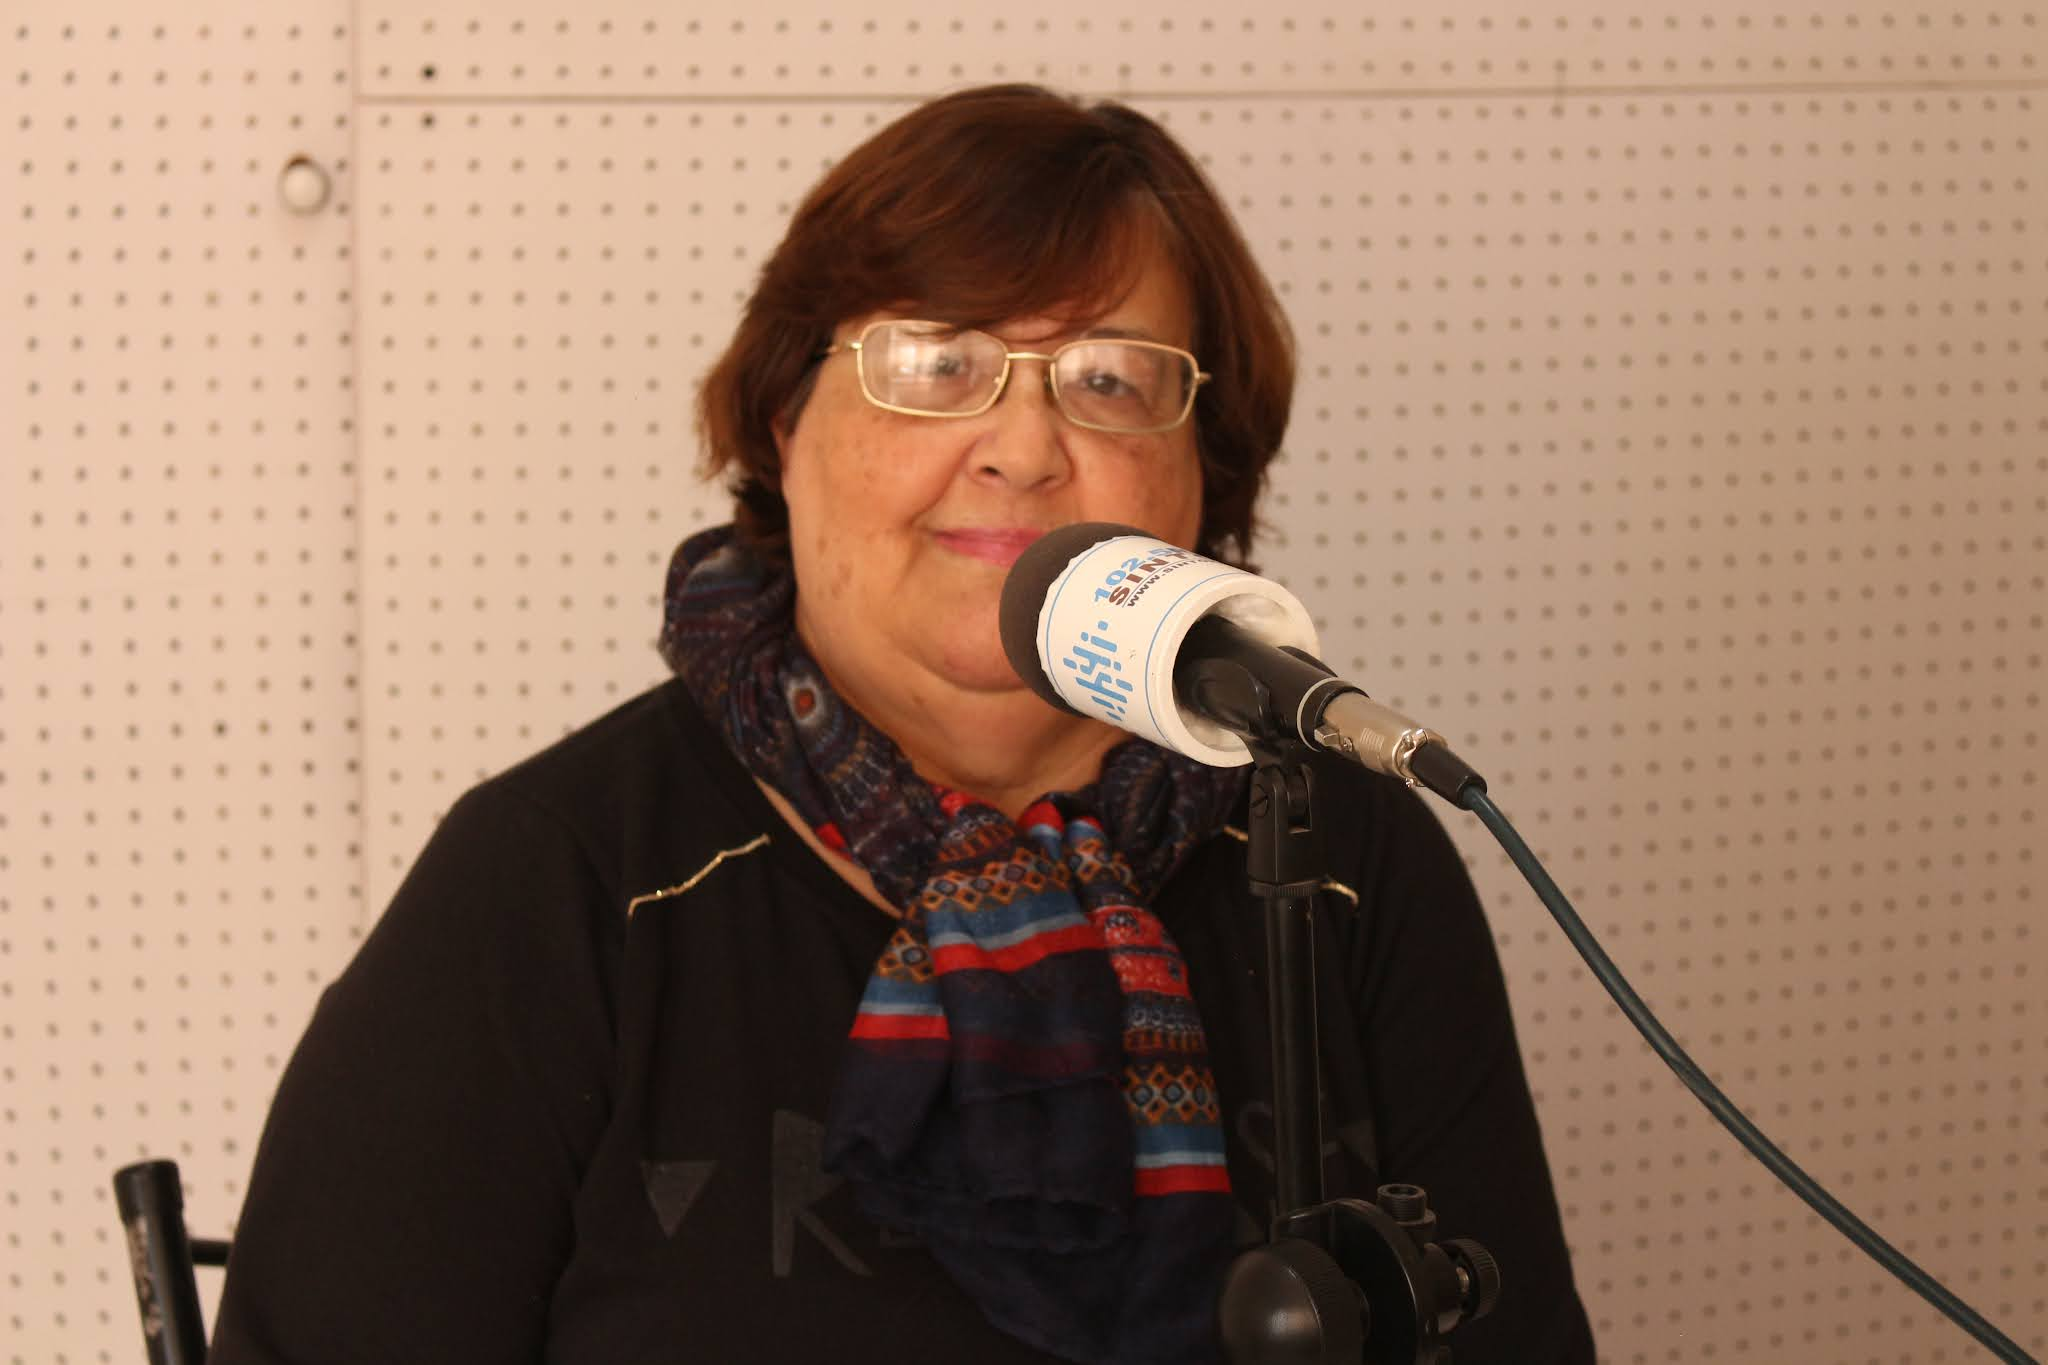 Norma Ripoll